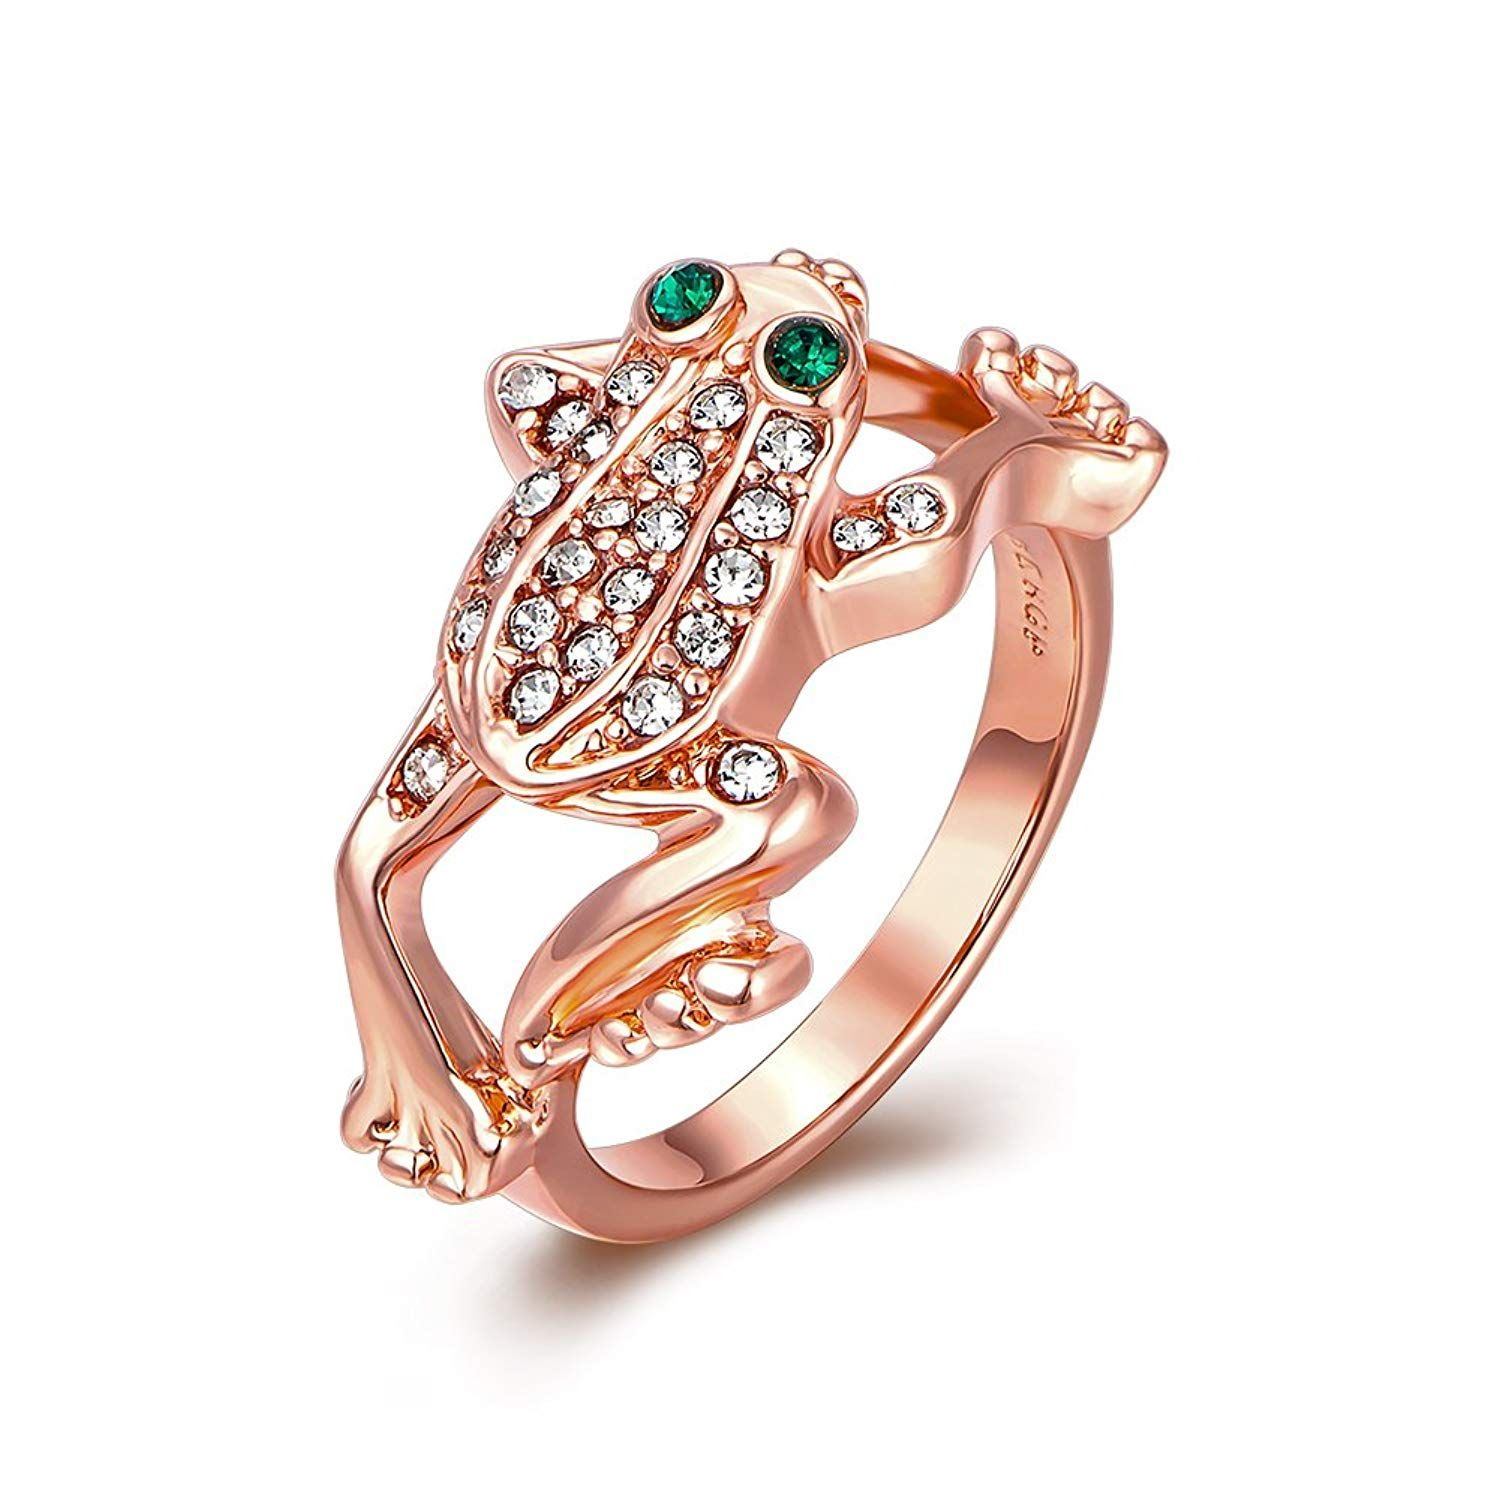 2c8e0e578 LuckyWeng Women's New Exquisite Fashion Jewelry Rose Gold Frog Diamond Ring  ** Many thanks for seeing our image. (This is an affiliate link)  #promiserings